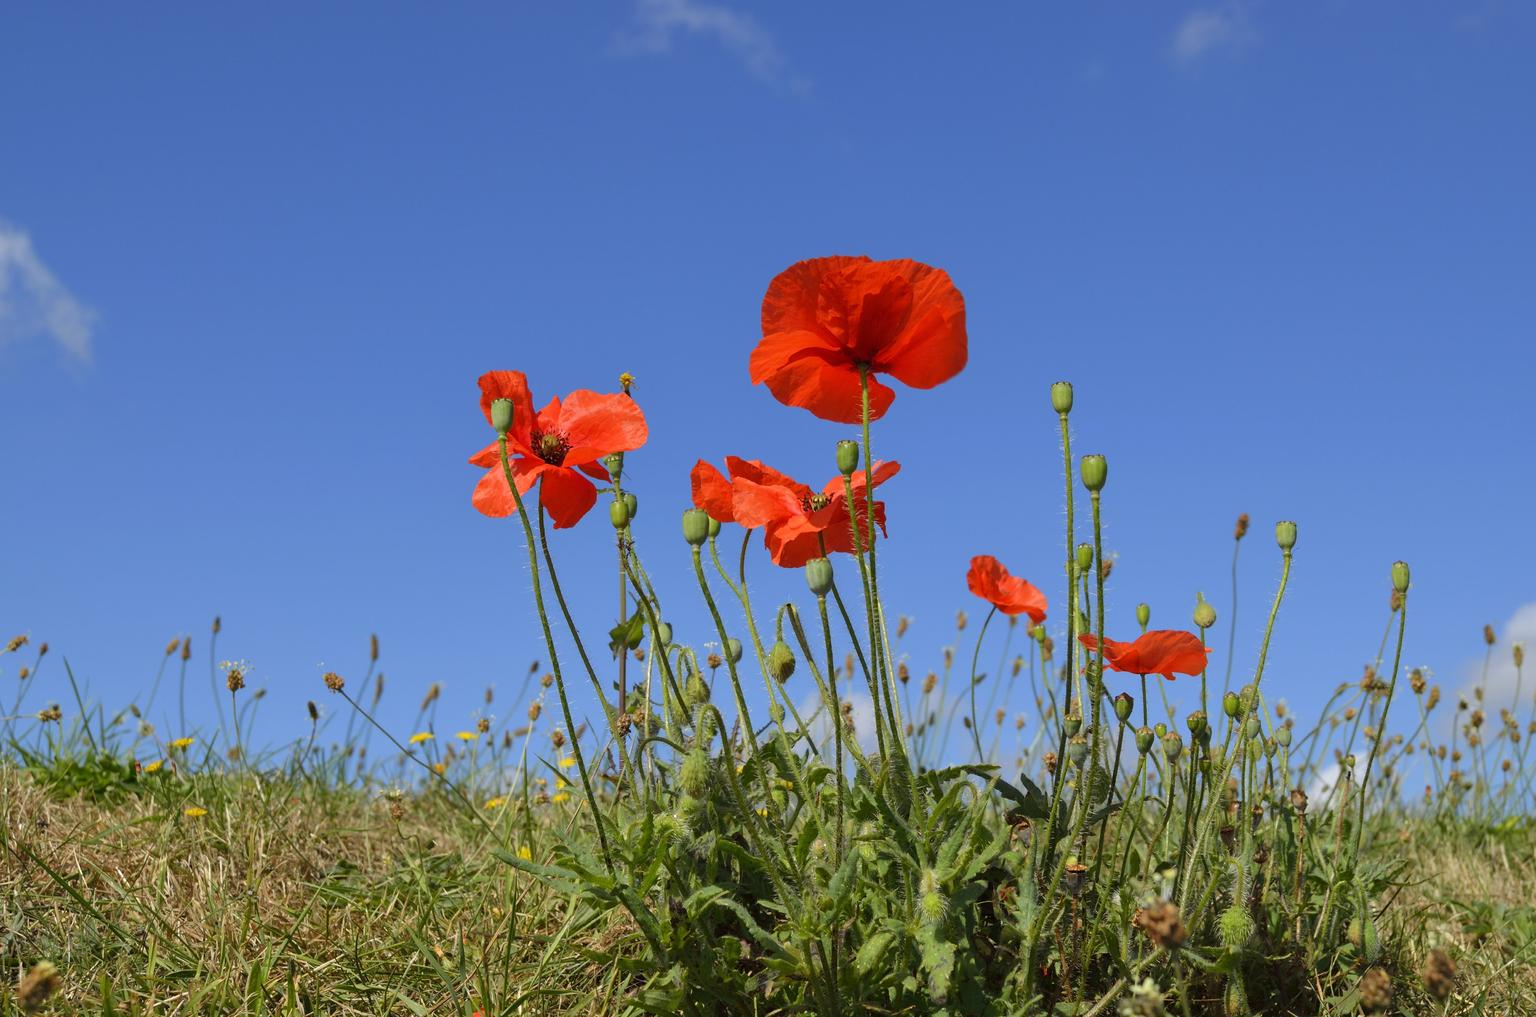 MÁS FOTOS, Remembrance tour from Bruges. The city Bruges & the poppies of Flanders Fields